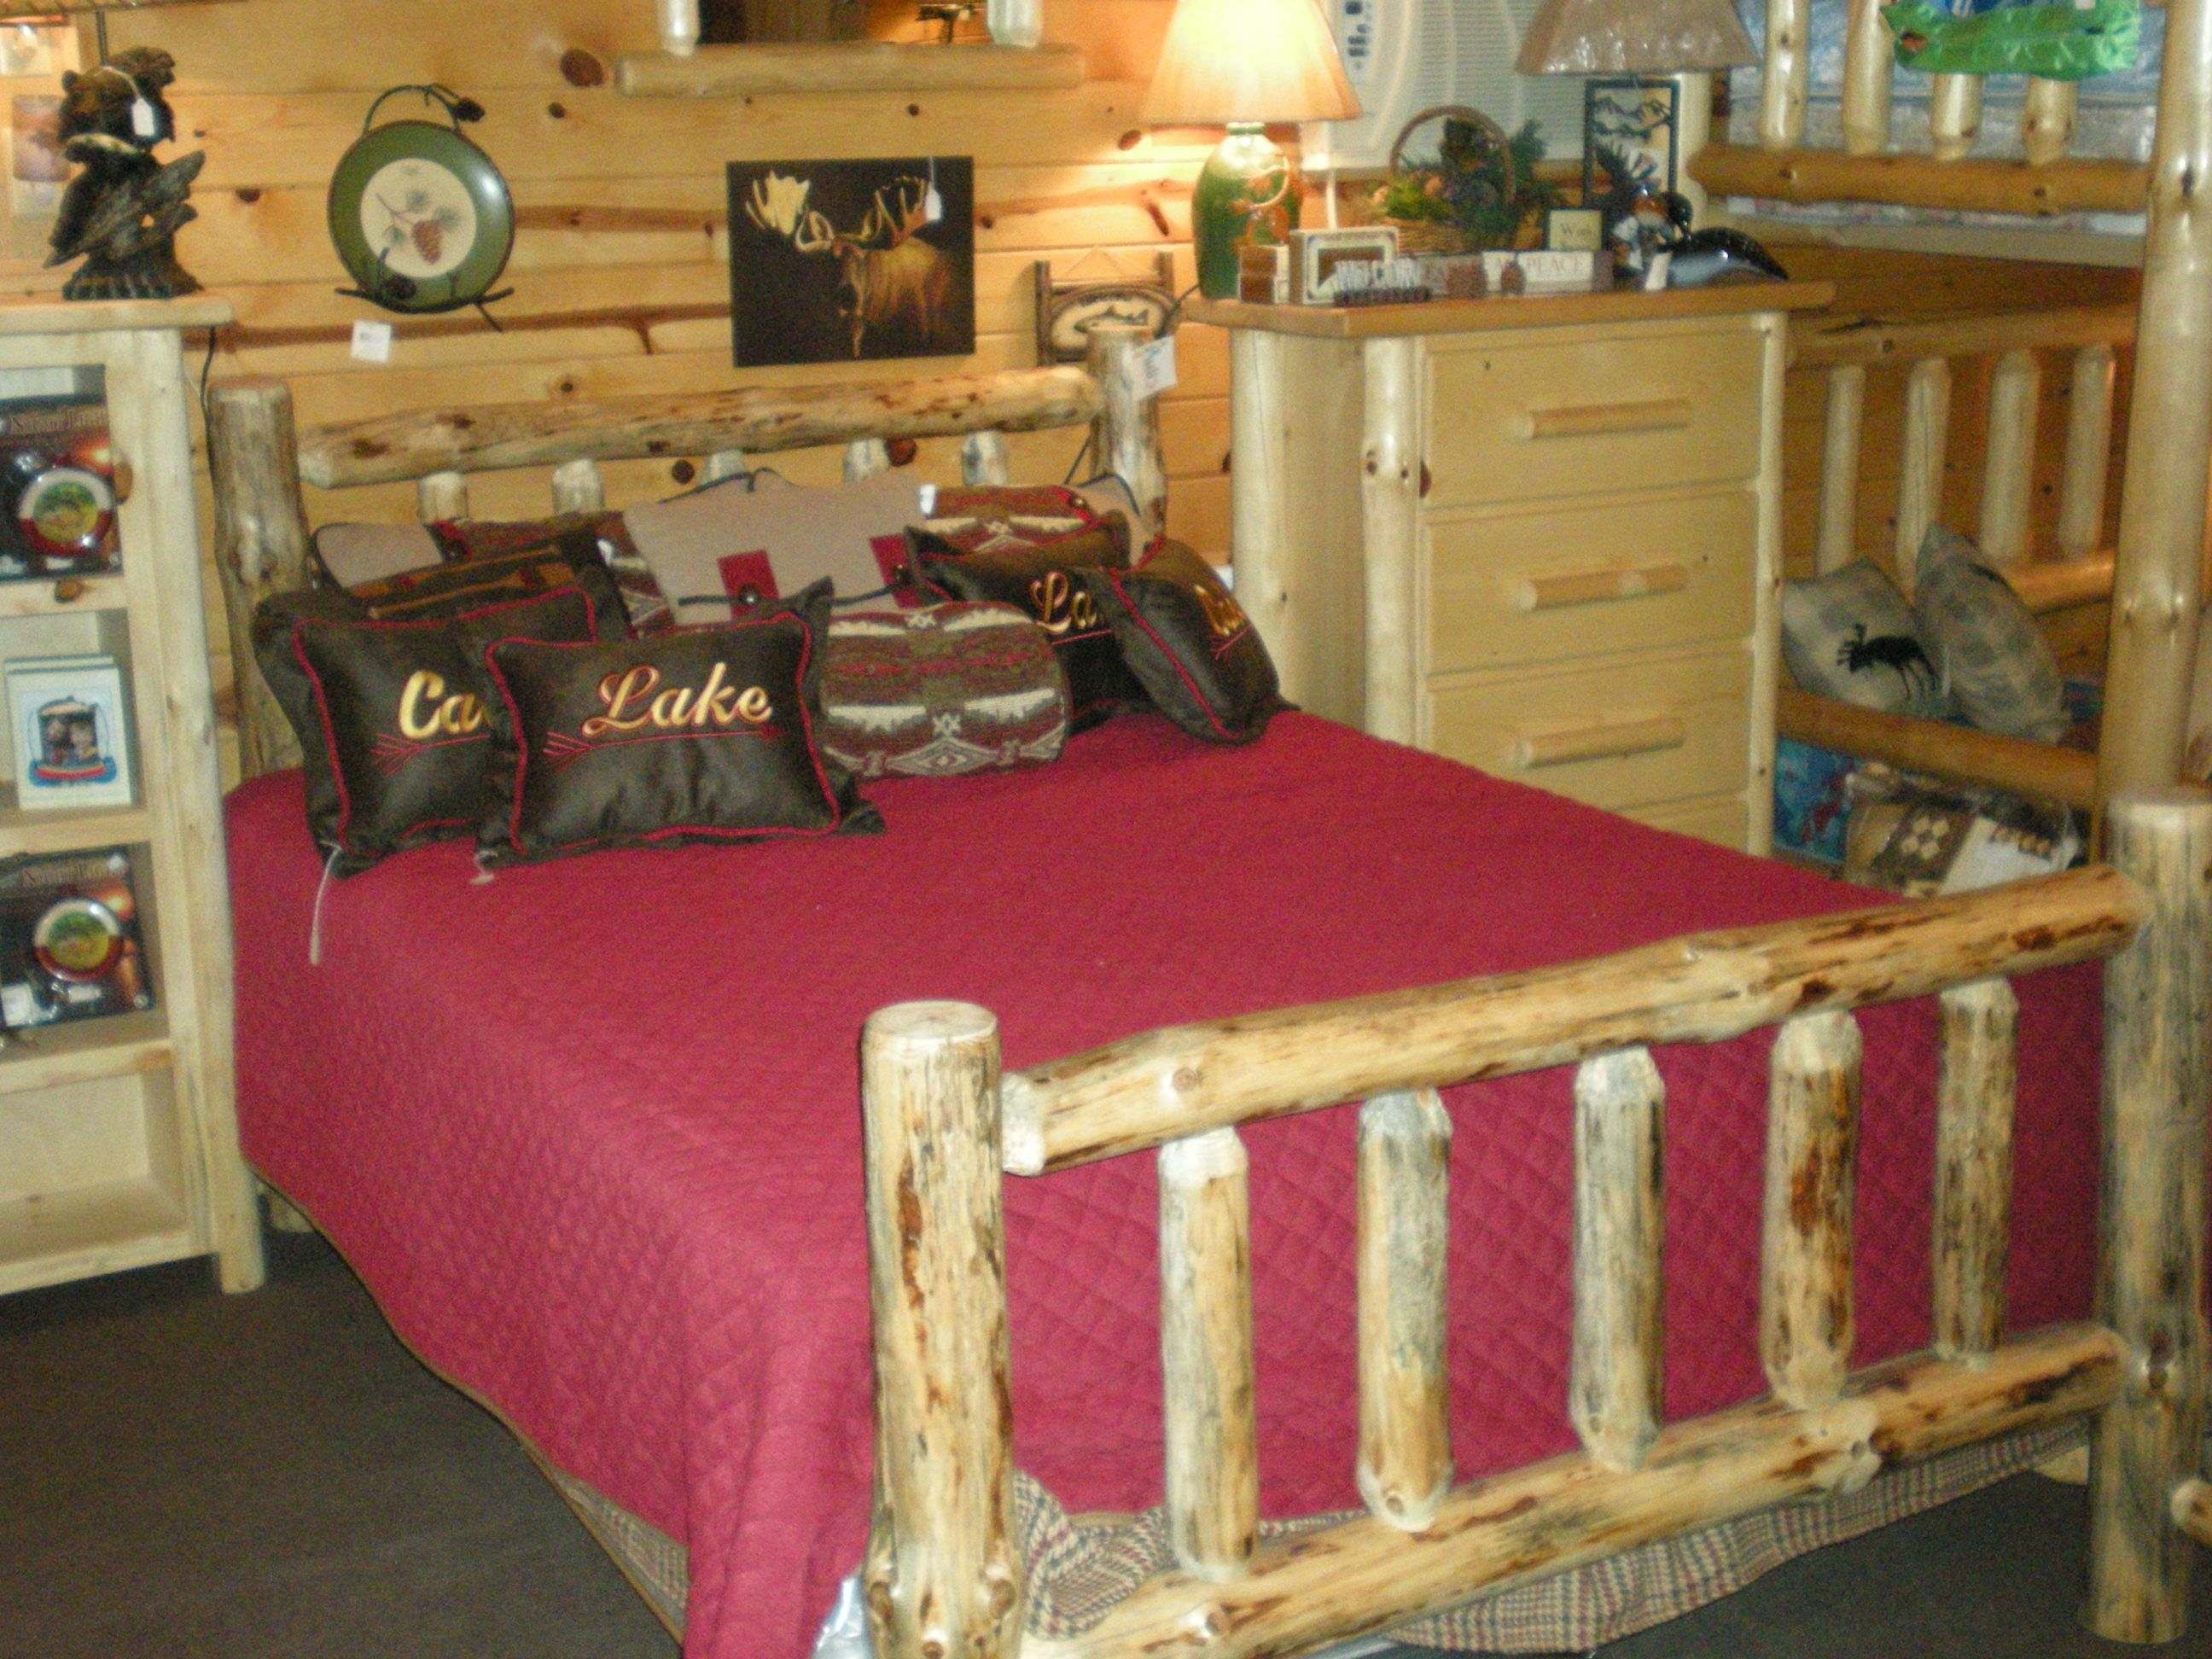 Astonishing Twist Of Natures Standard Log Bed Available Fully Download Free Architecture Designs Rallybritishbridgeorg